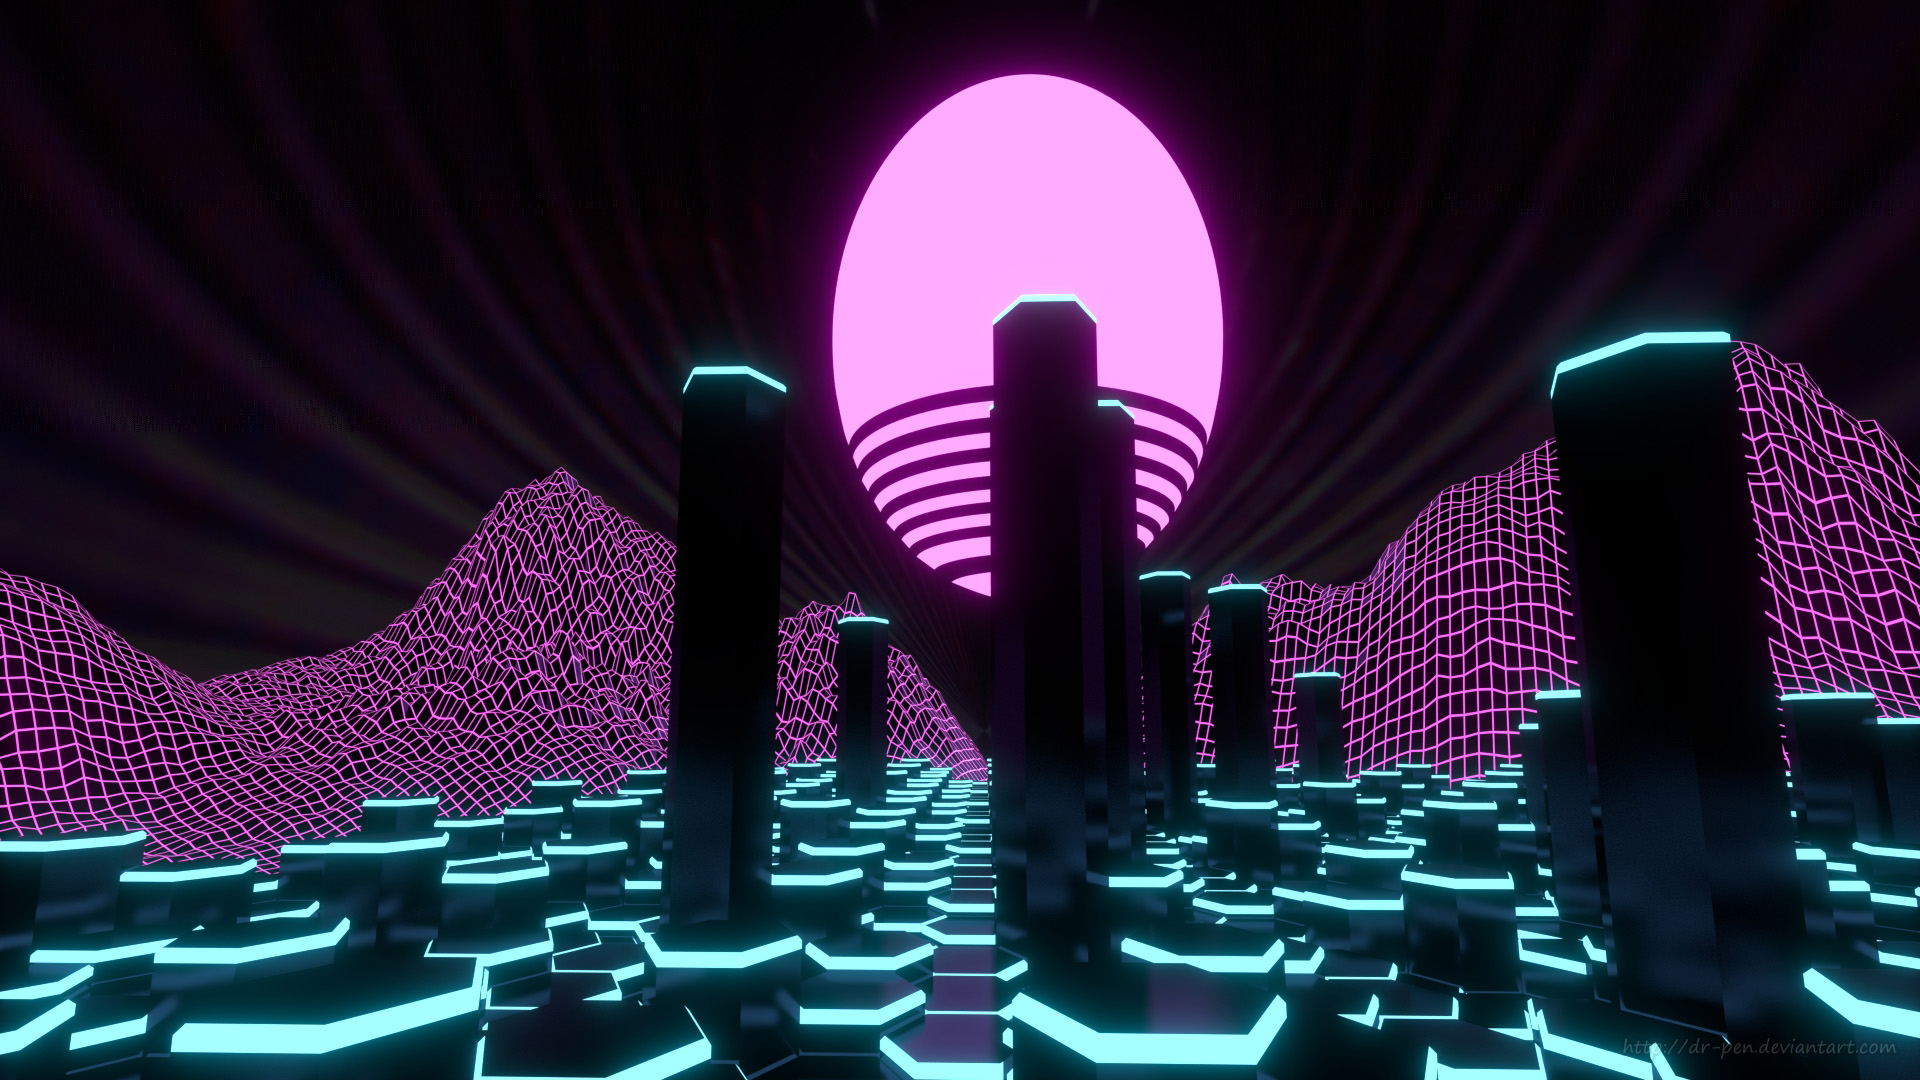 synthwave wallpaper 1920x1080